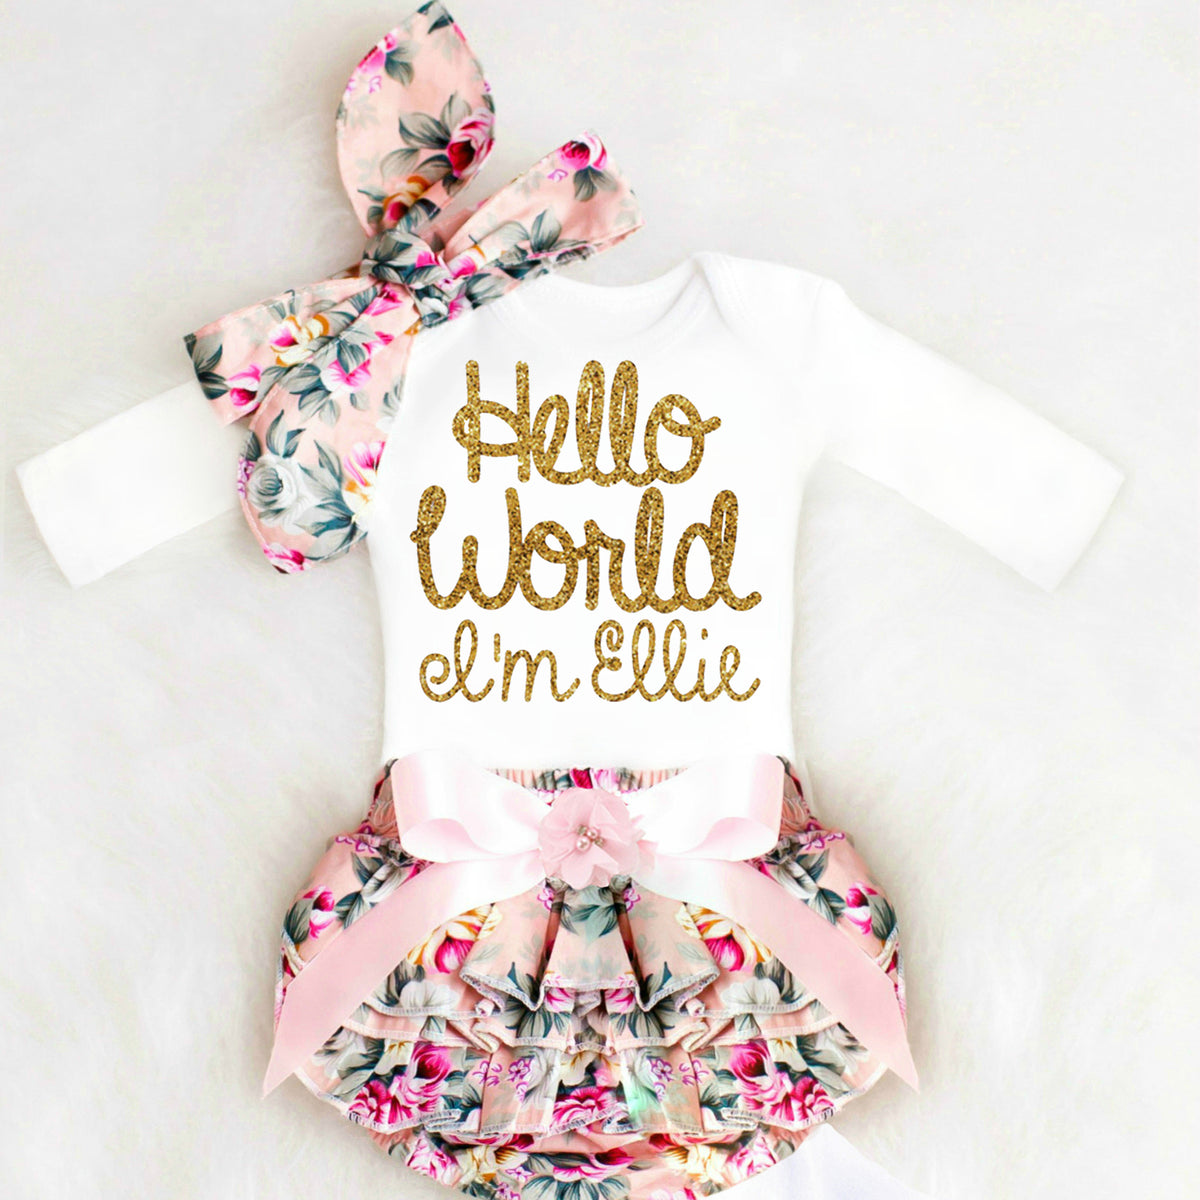 New Baby Girl Clothes Baby Shower Gift Cute Baby Clothes Newborn Baby Girl